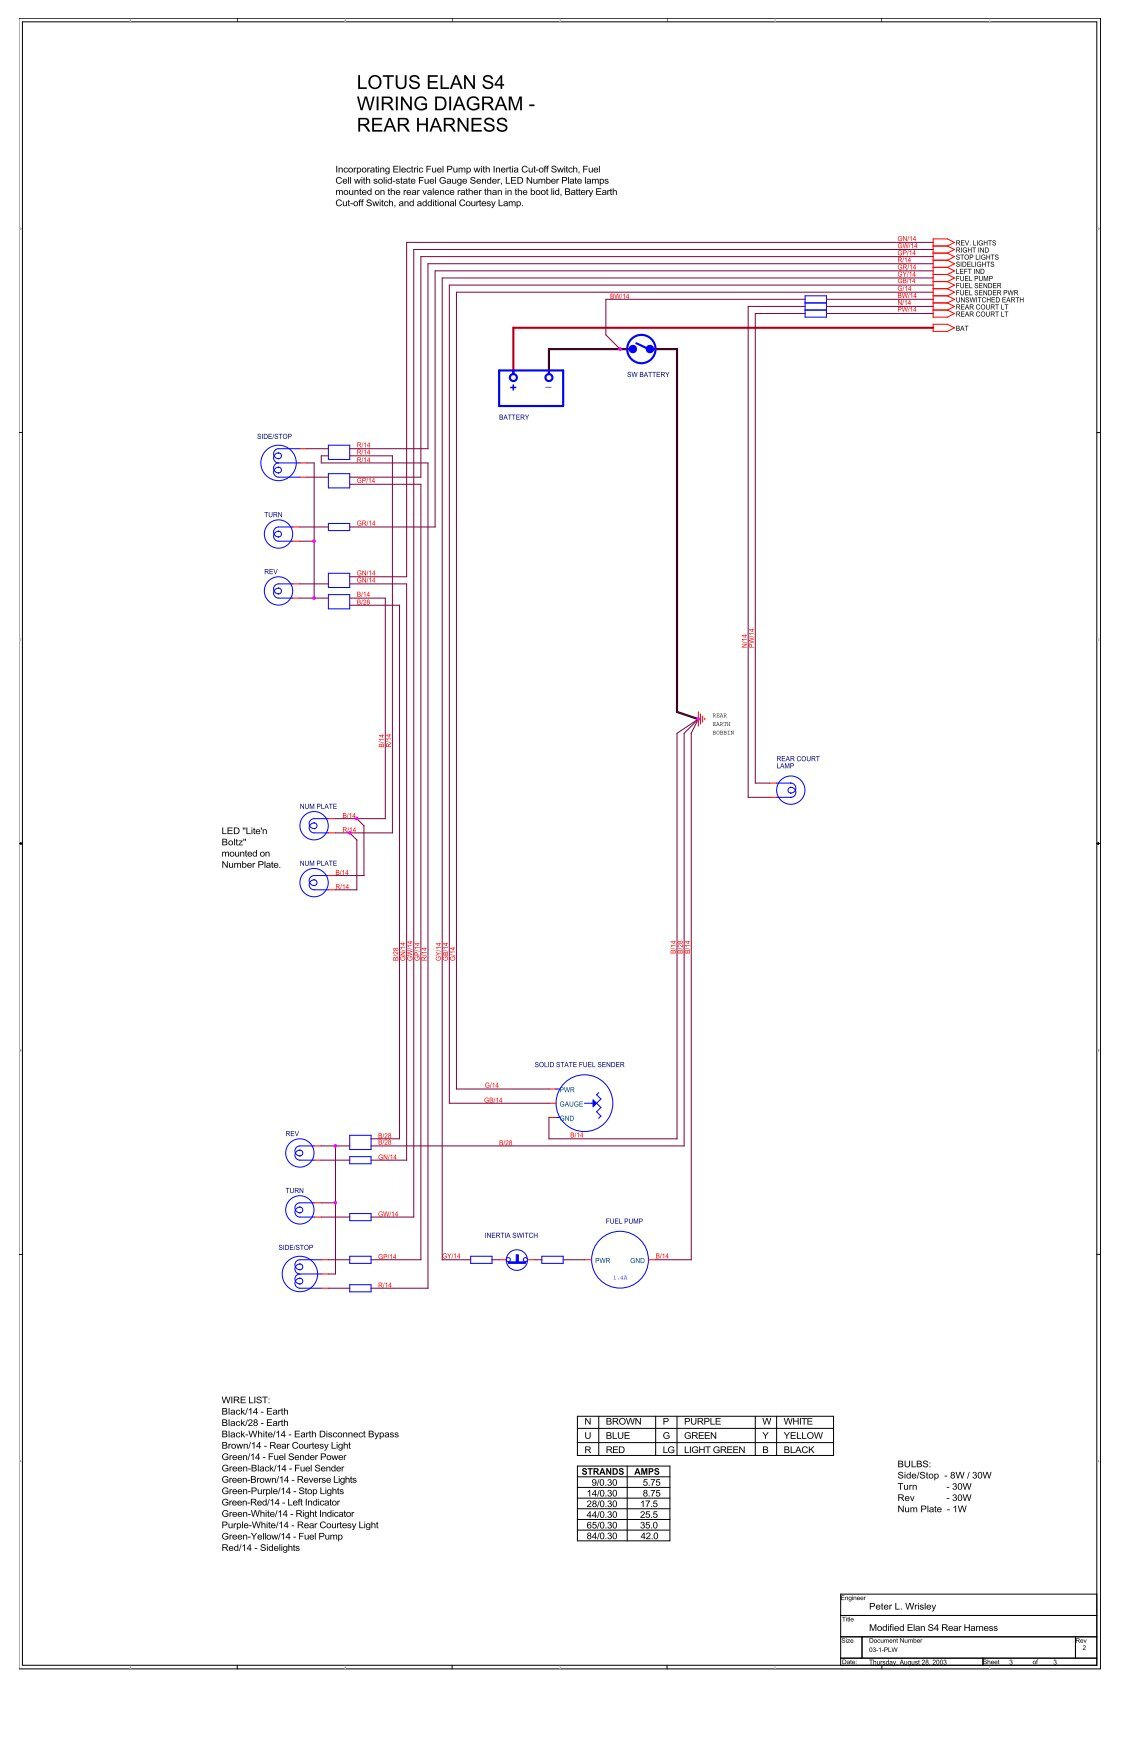 lotus elan s4 wiring diagram rear harness lotus elan net?quality\=85 ezgo 48 volt gauge wiring diagram 48 volt golf cart battery  at gsmx.co